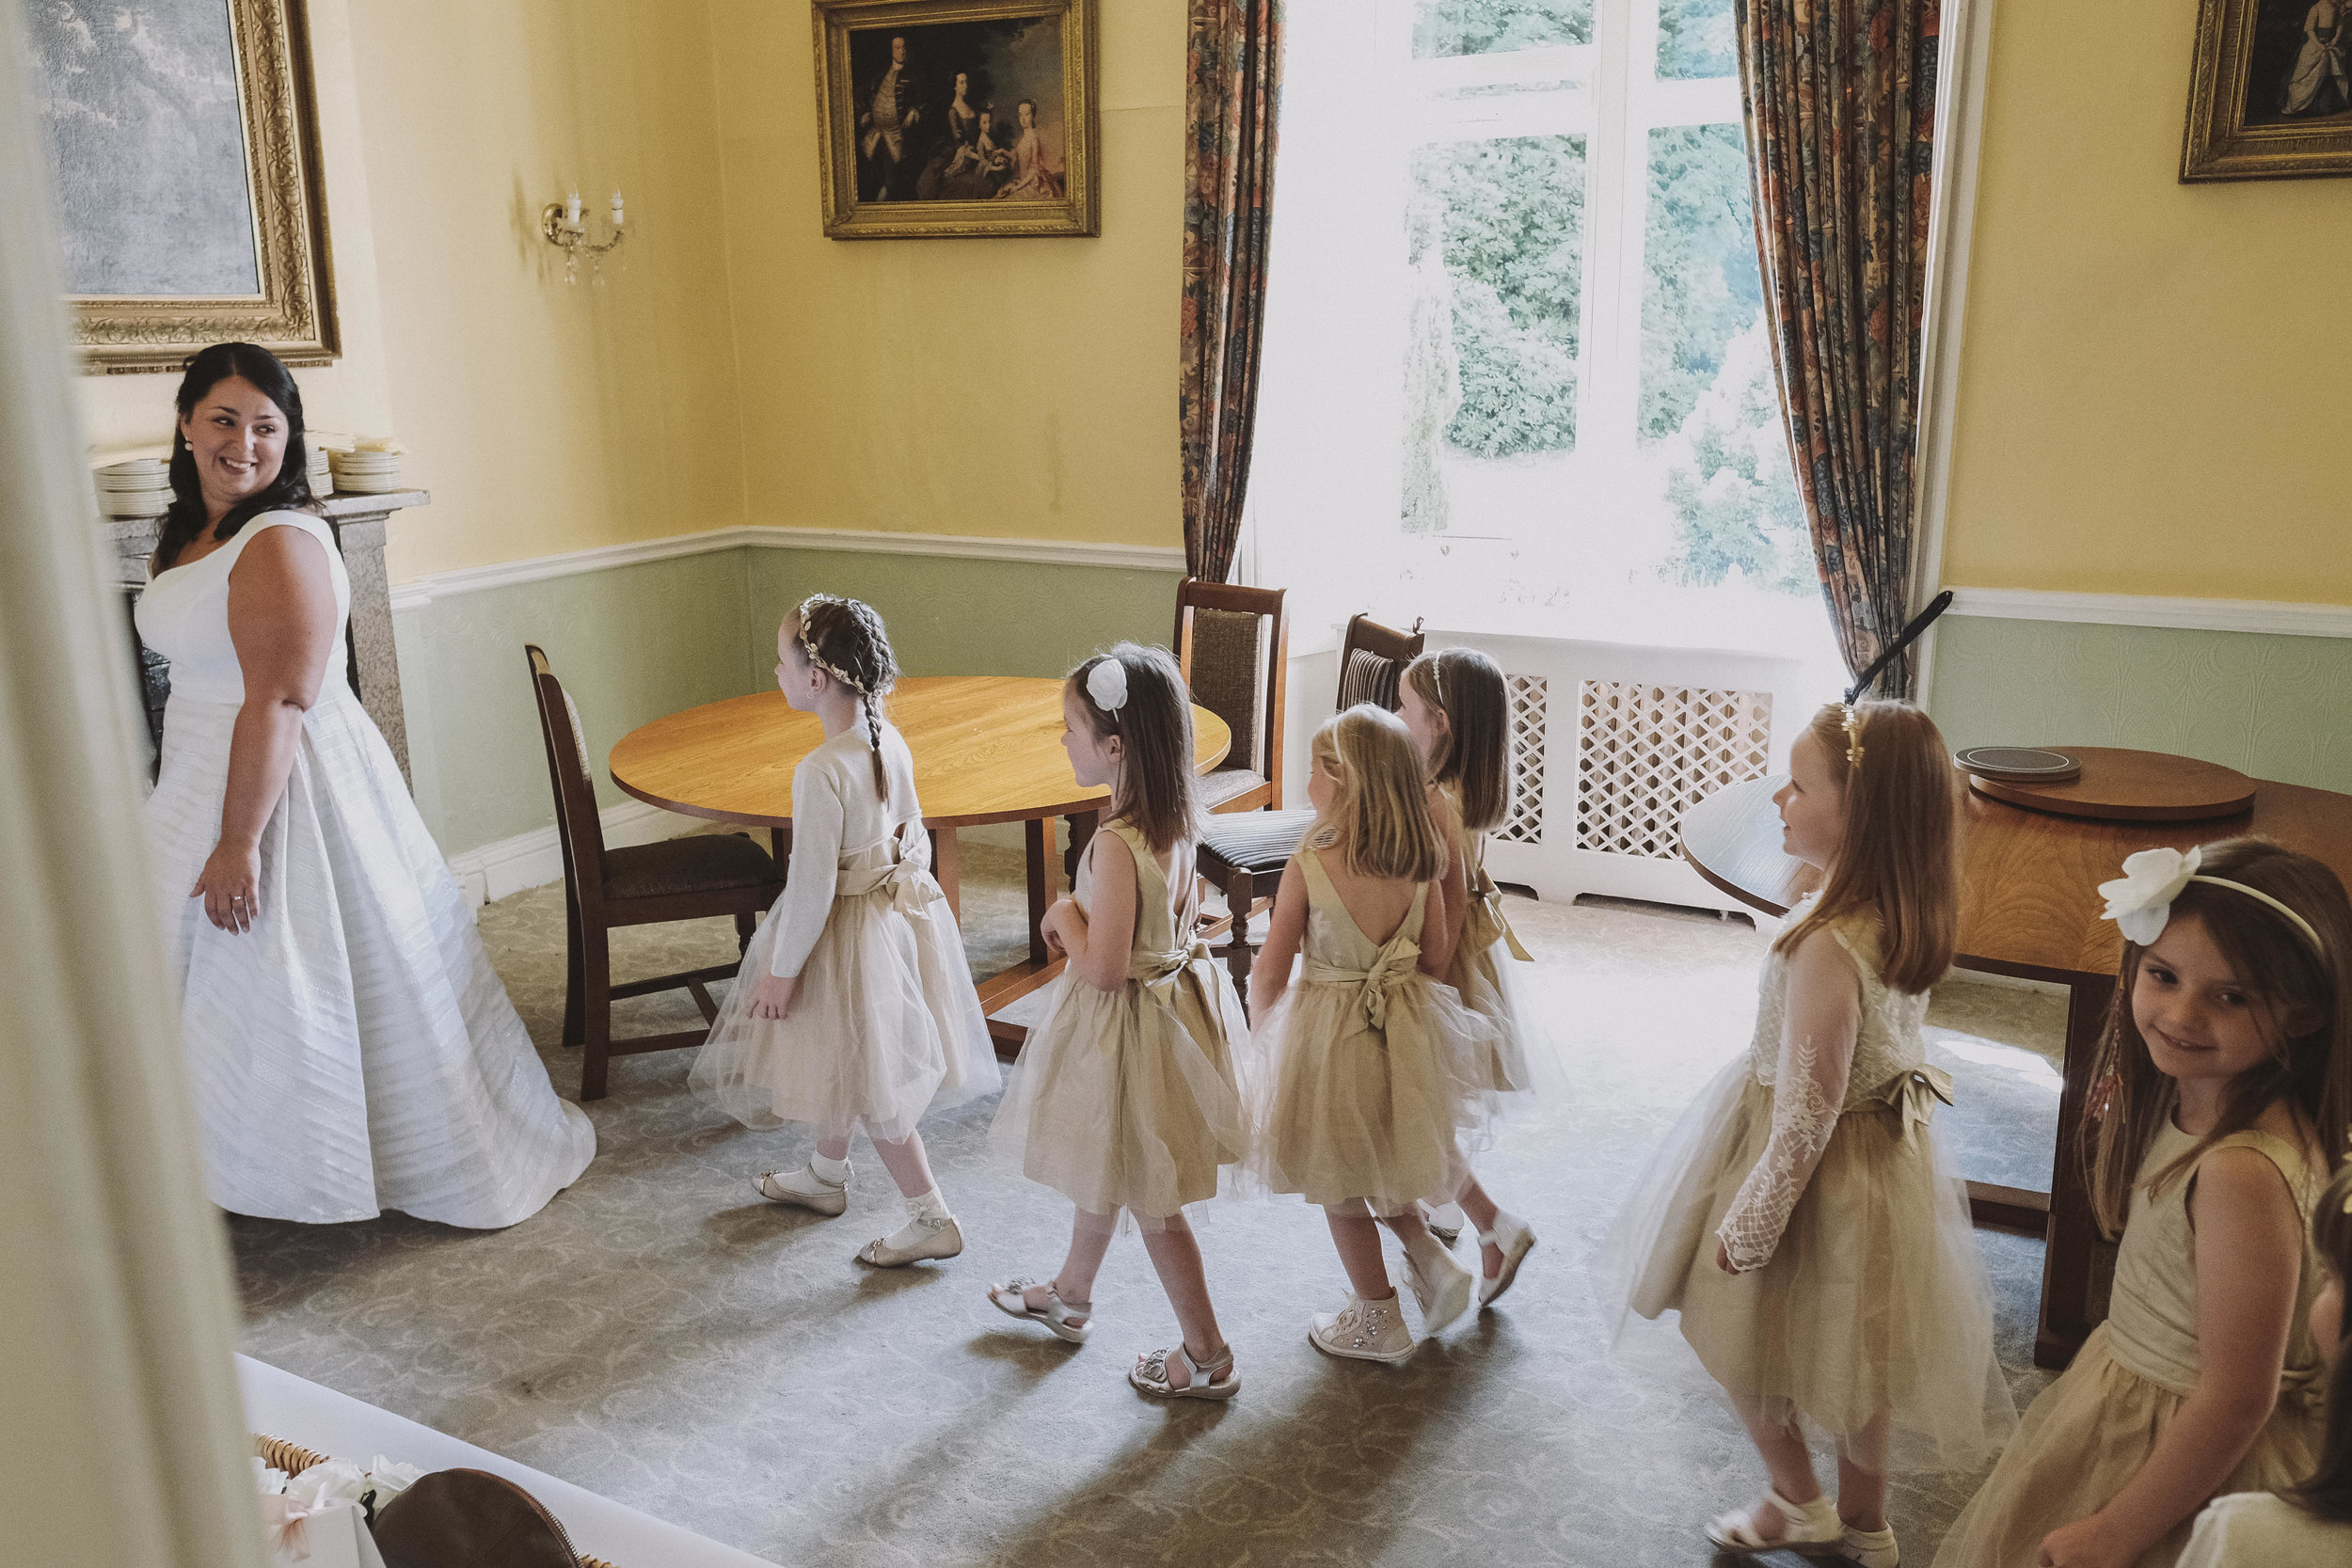 Flowergirls follow the bride as they practice their walk down the aisle at Julia and Darren's Lake District wedding by Barry Forshaw